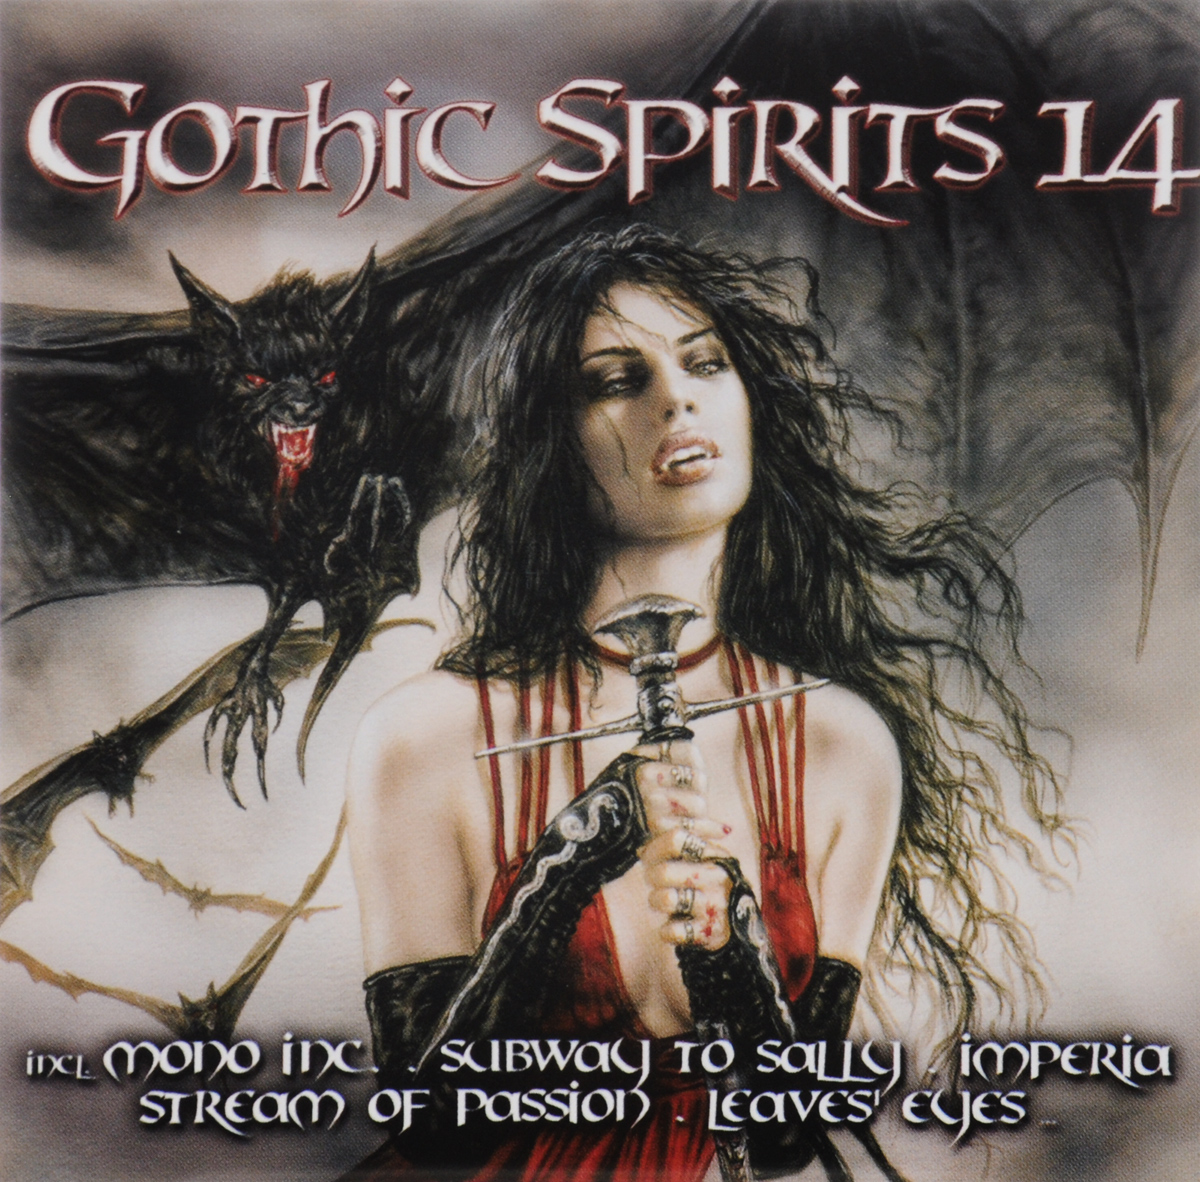 Imperia,Mono Inc.,Stream Of Passion,Subway To Sally,Schandmaul,Serenity,Lake Of Tears,Rhombus,Gothminister,The Silence Industry ,Leaves' Eyes,MiDnattsol,Krypteria,Arven,Amorphis,Schwarzer Engel ,Schongeist,The Pussybats,Sons Of Seasons,Krystal System Gothic Spirits 14 (2 CD) amorphis amorphis under the red cloud 2 lp